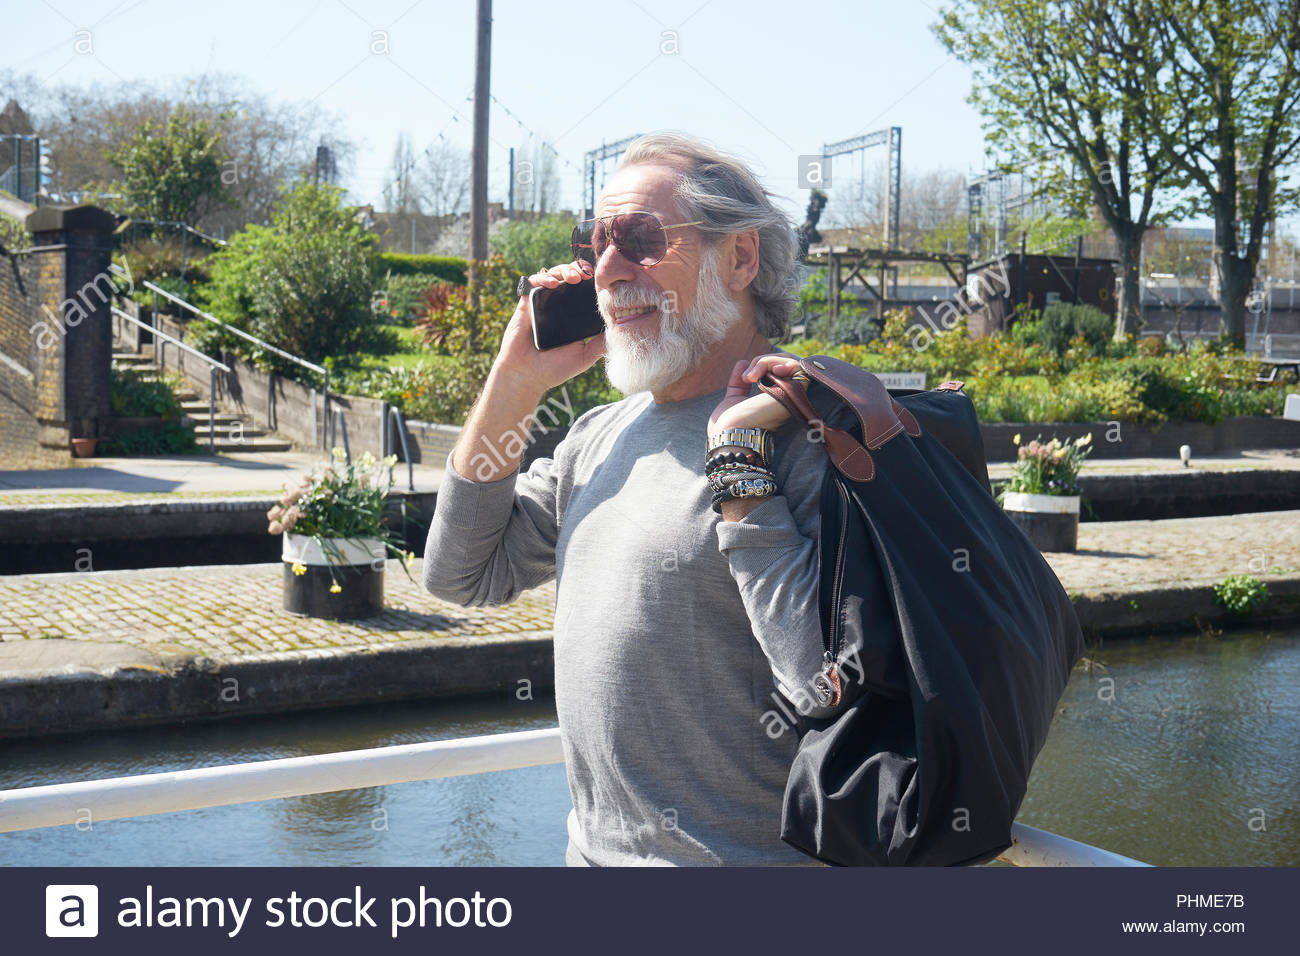 Senior man on phone call - Stock Image